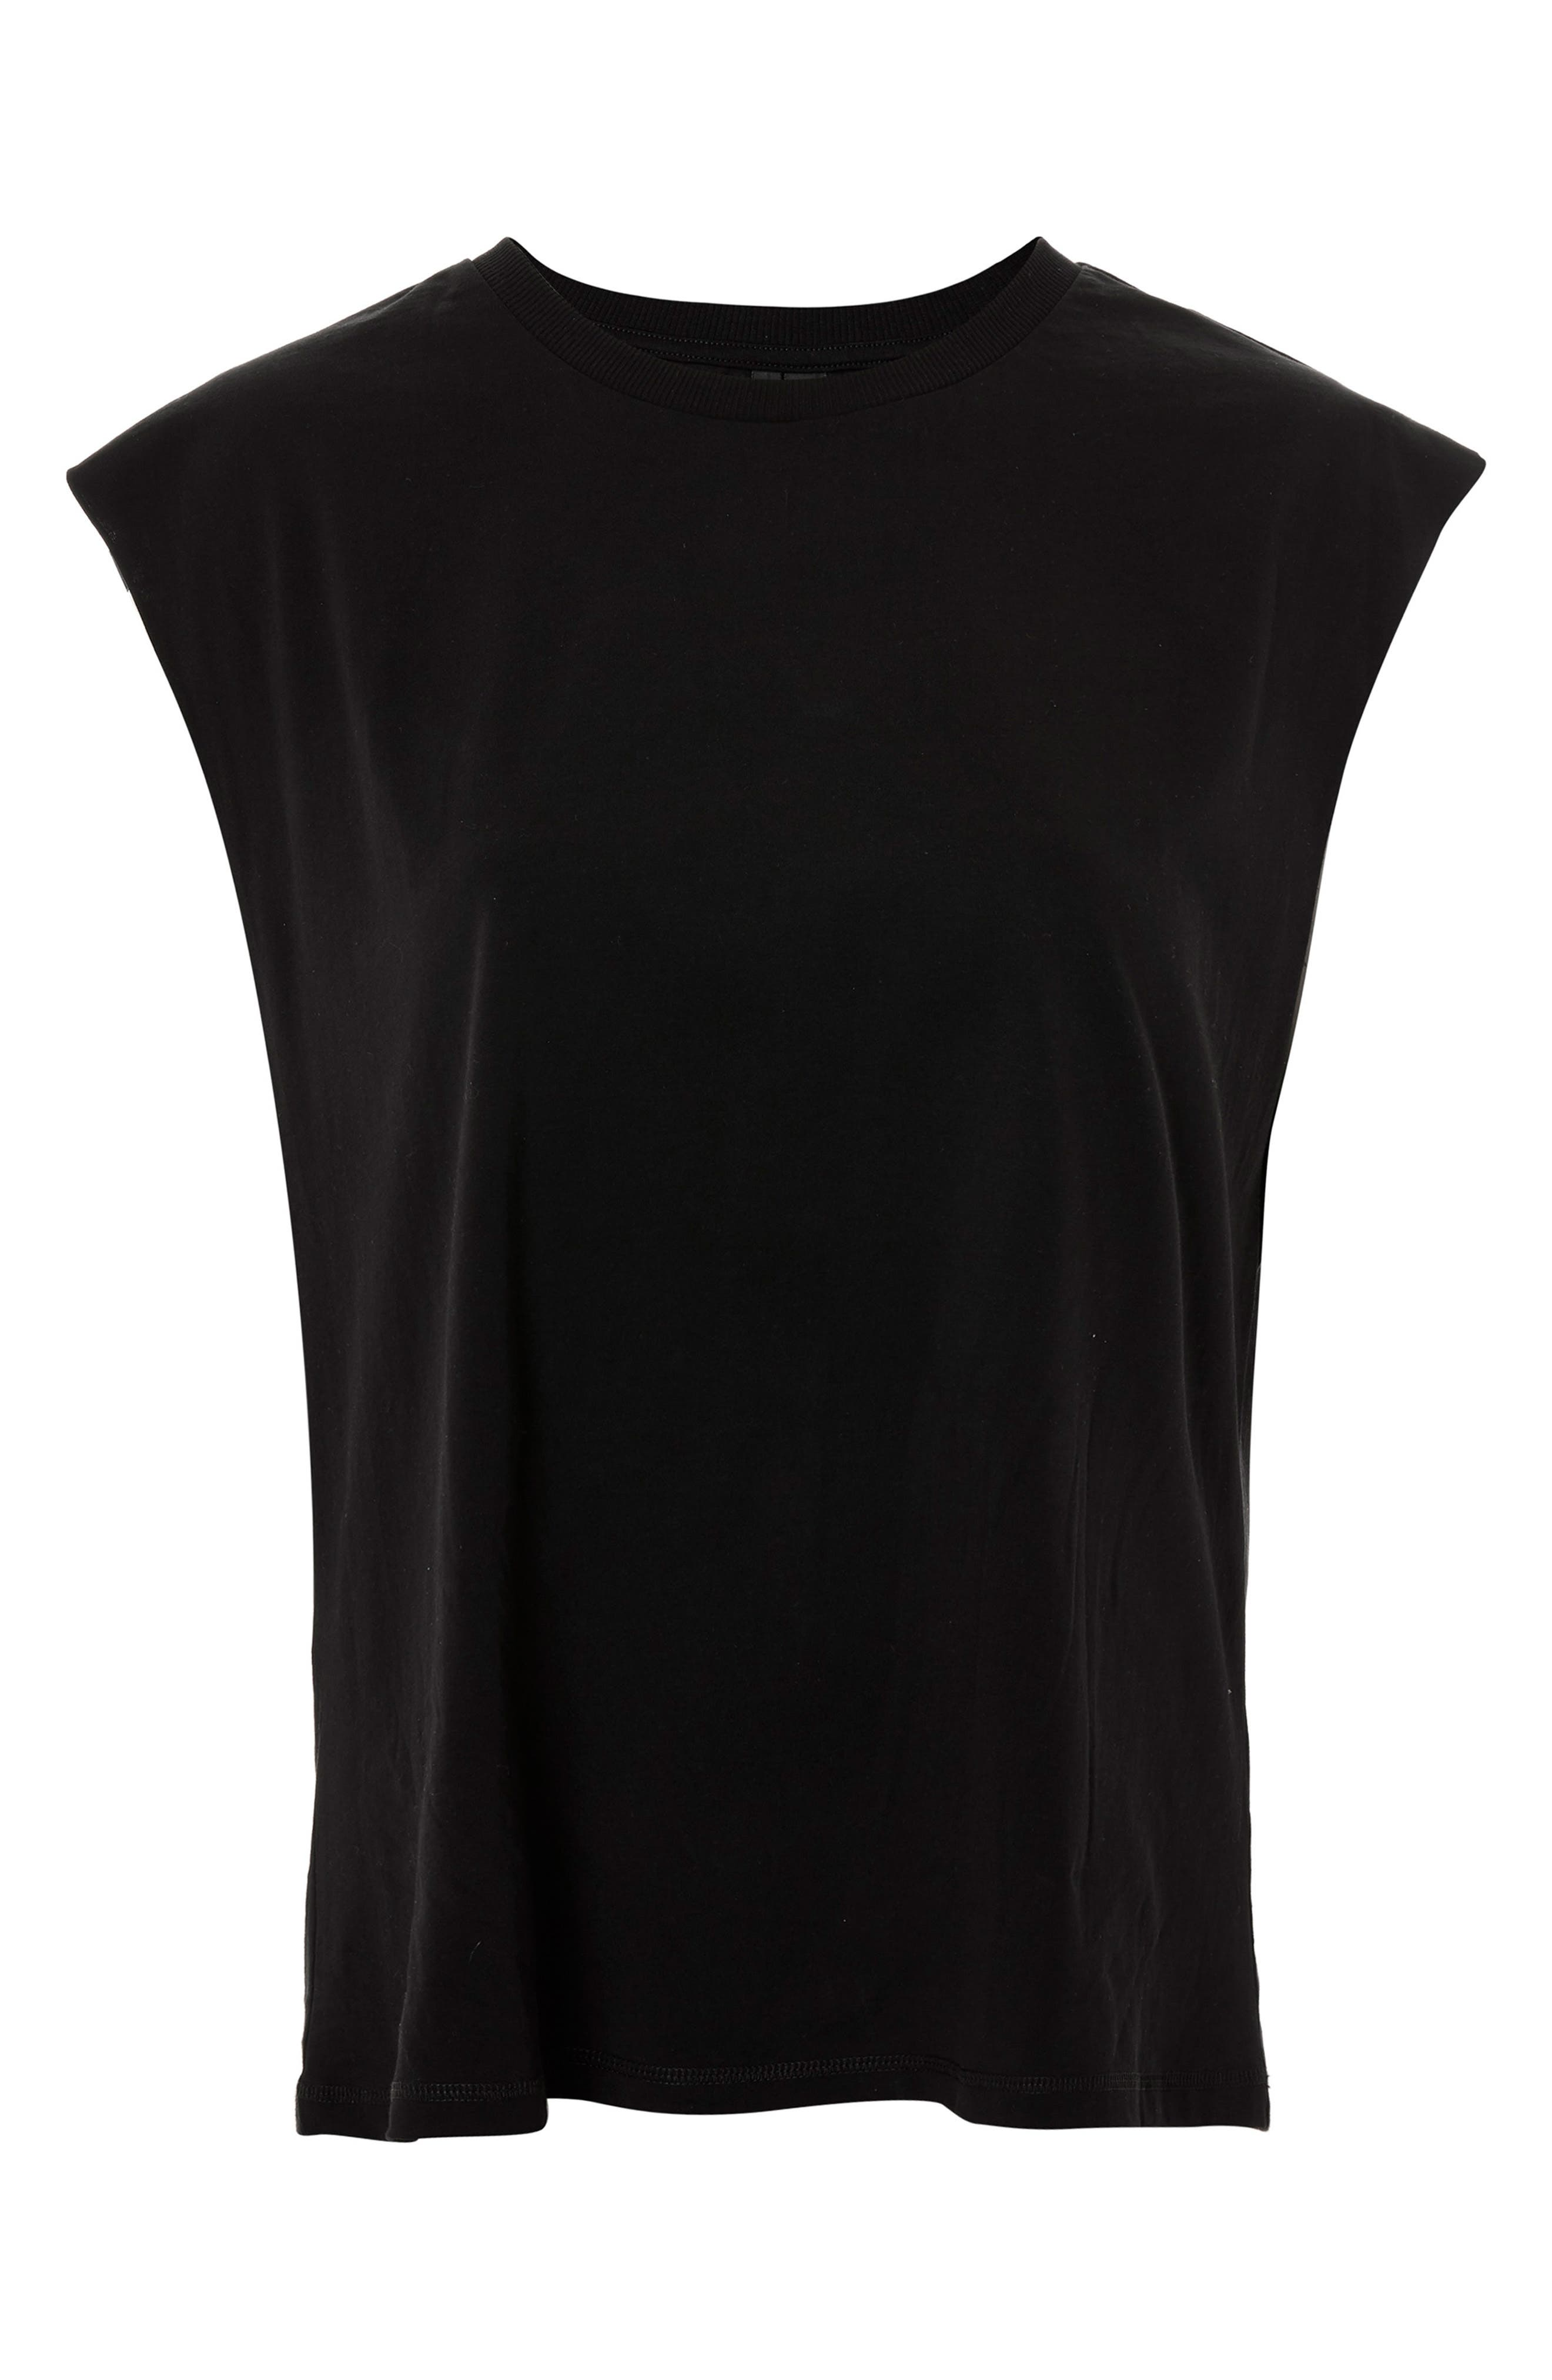 Topshop Boutique Raw Sleeve Top